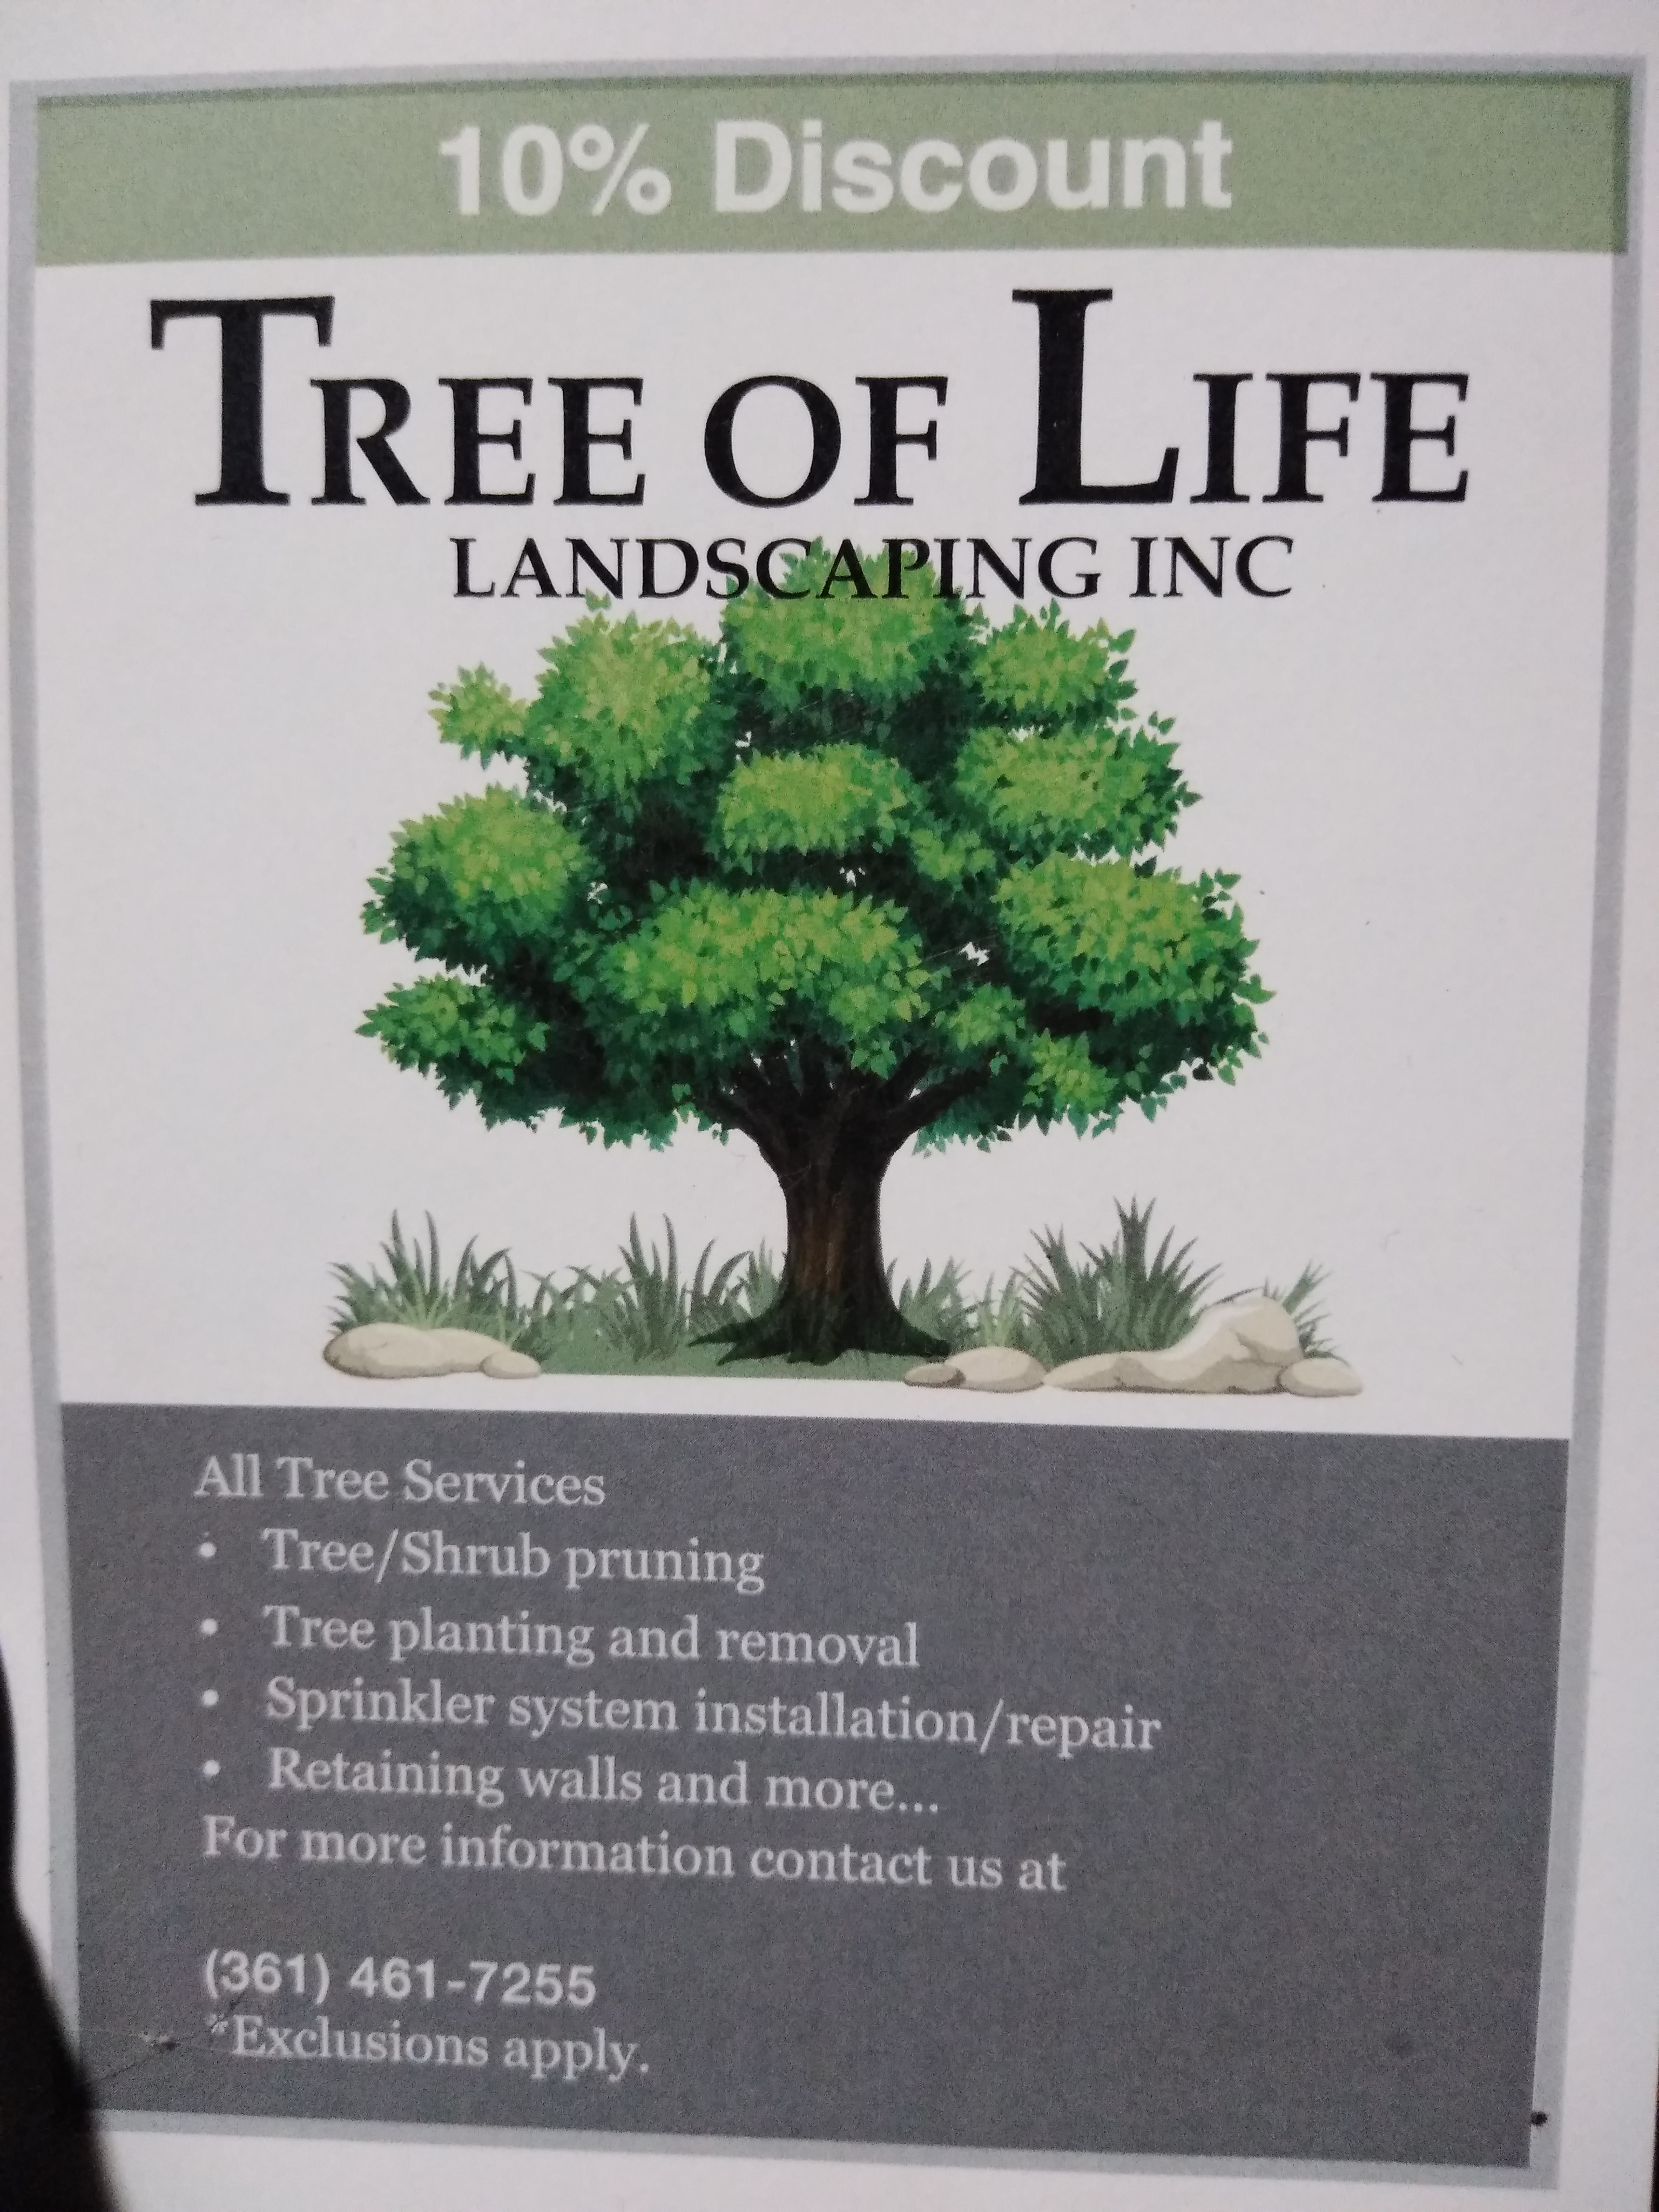 Tree of Life Landscaping Inc.